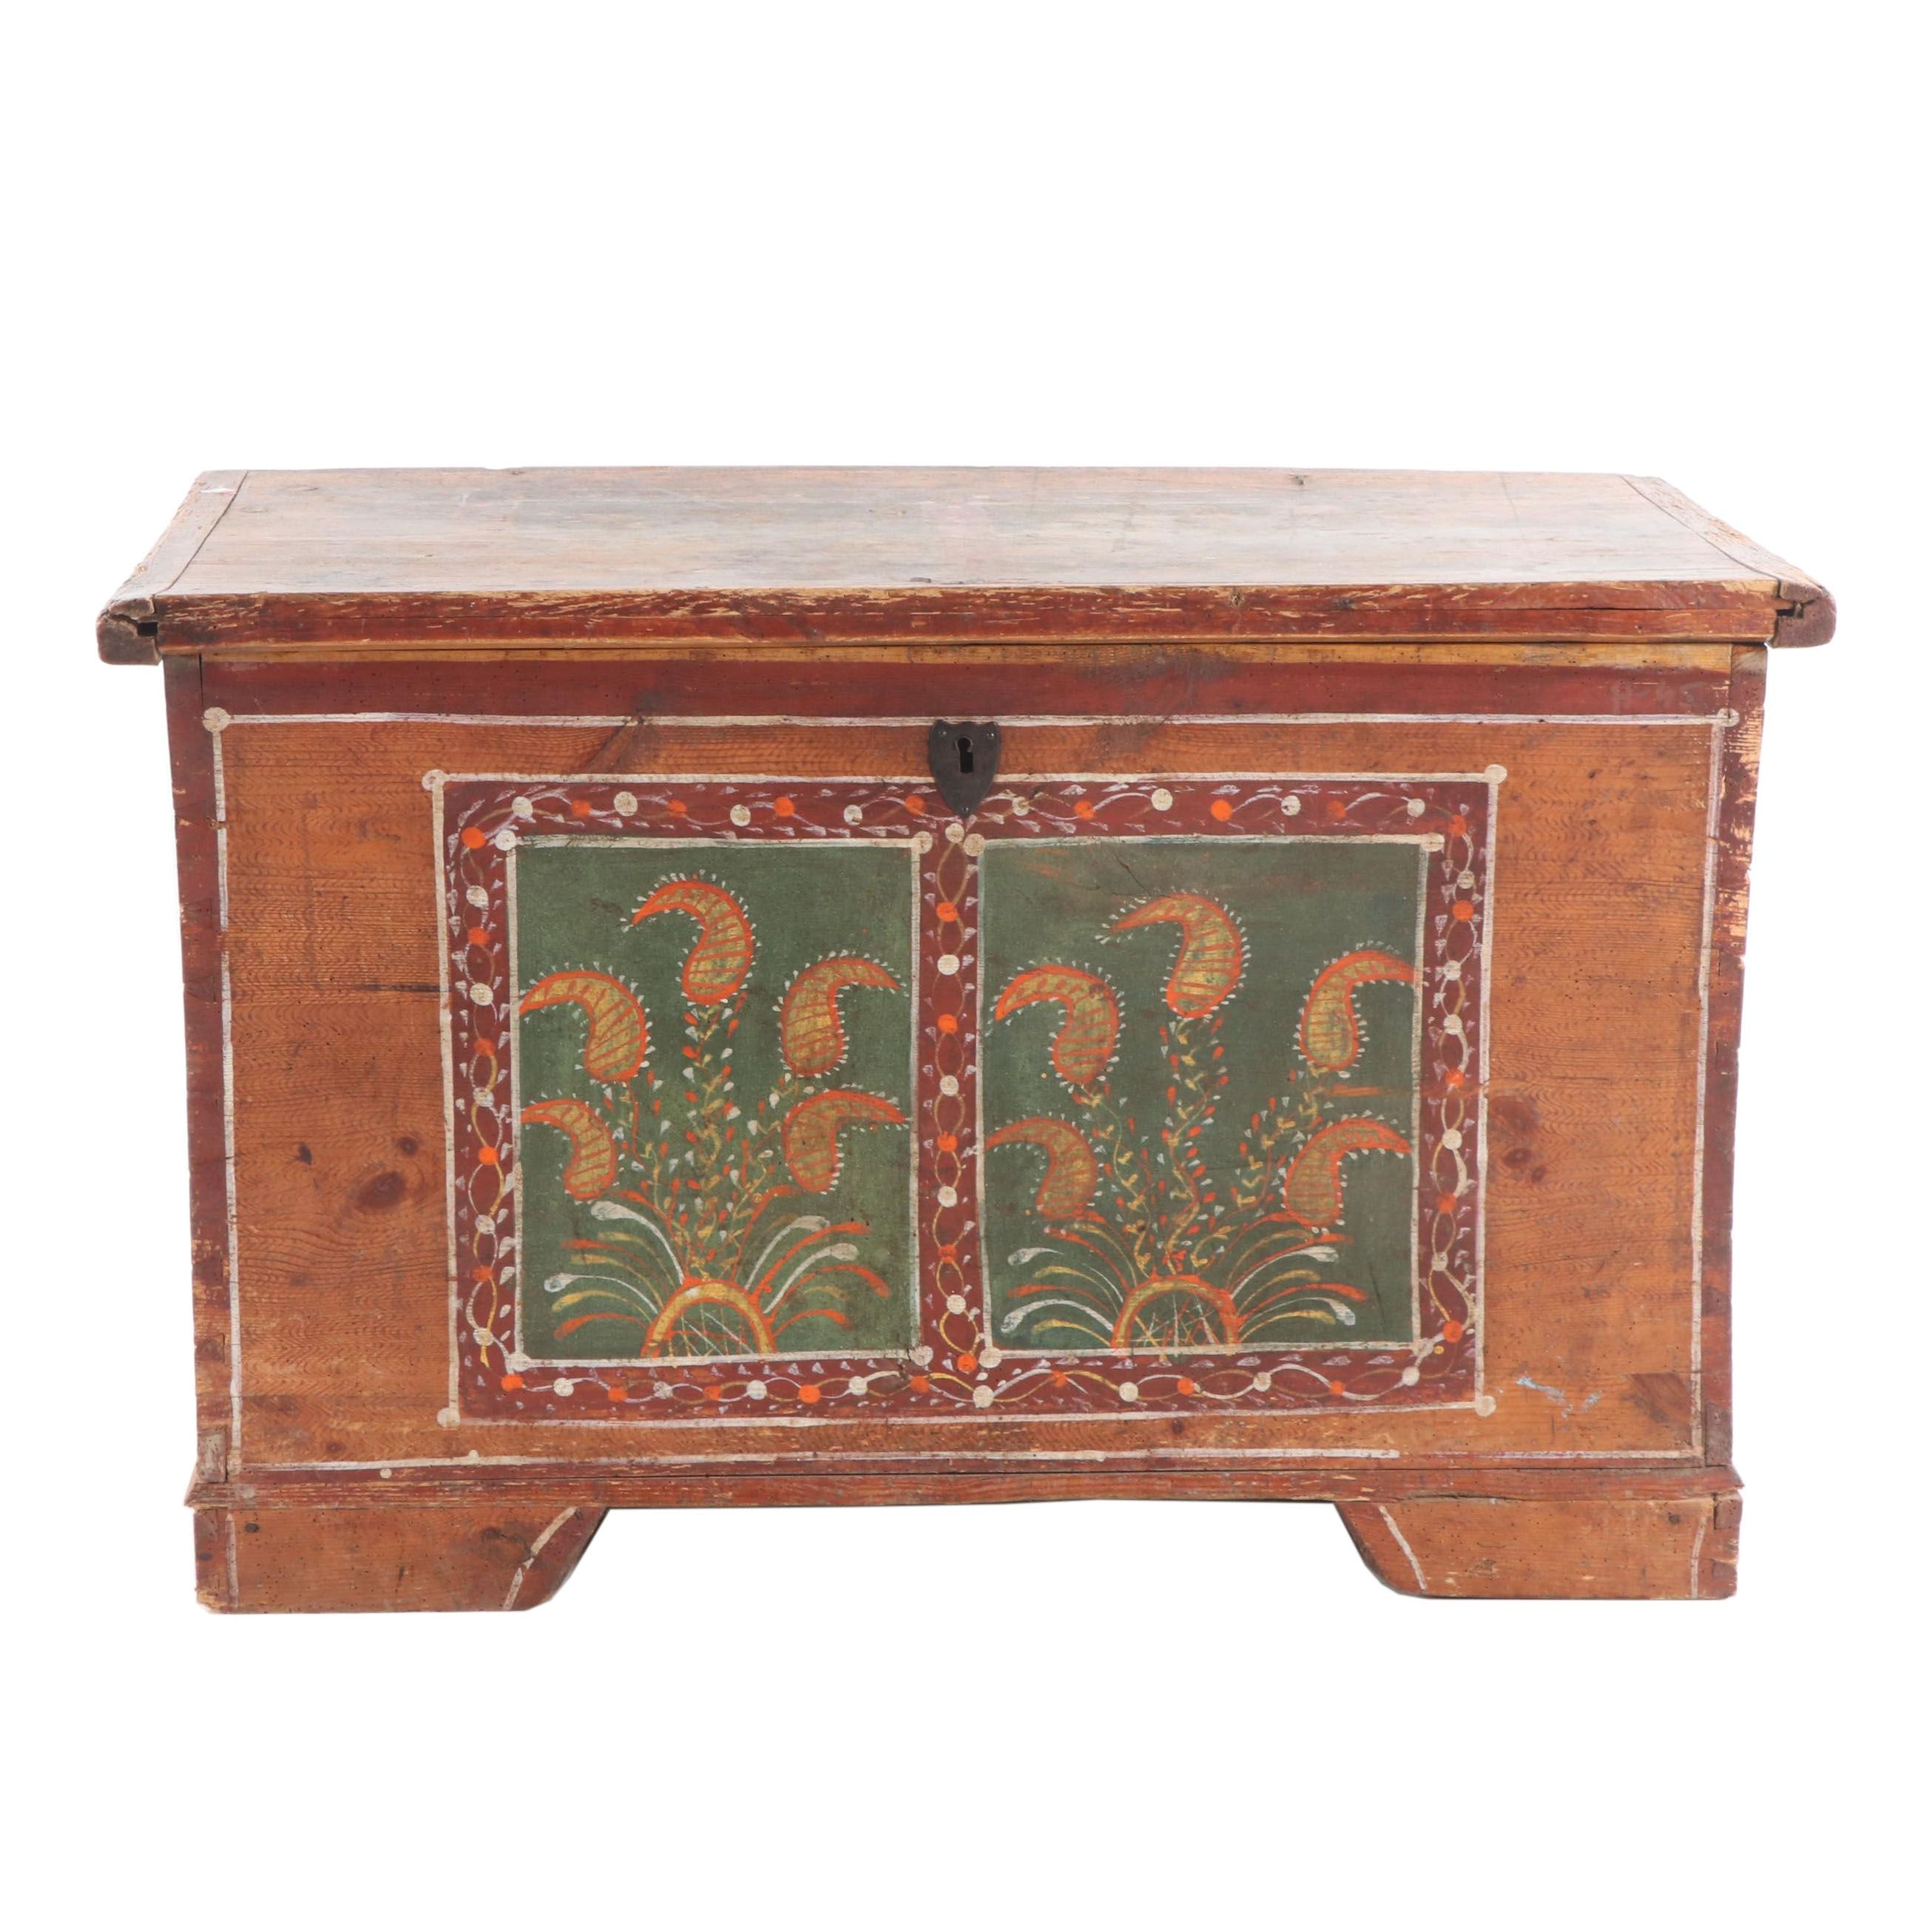 Hand-Painted Austro-Hungarian Blanket Chest, Mid-19th Century